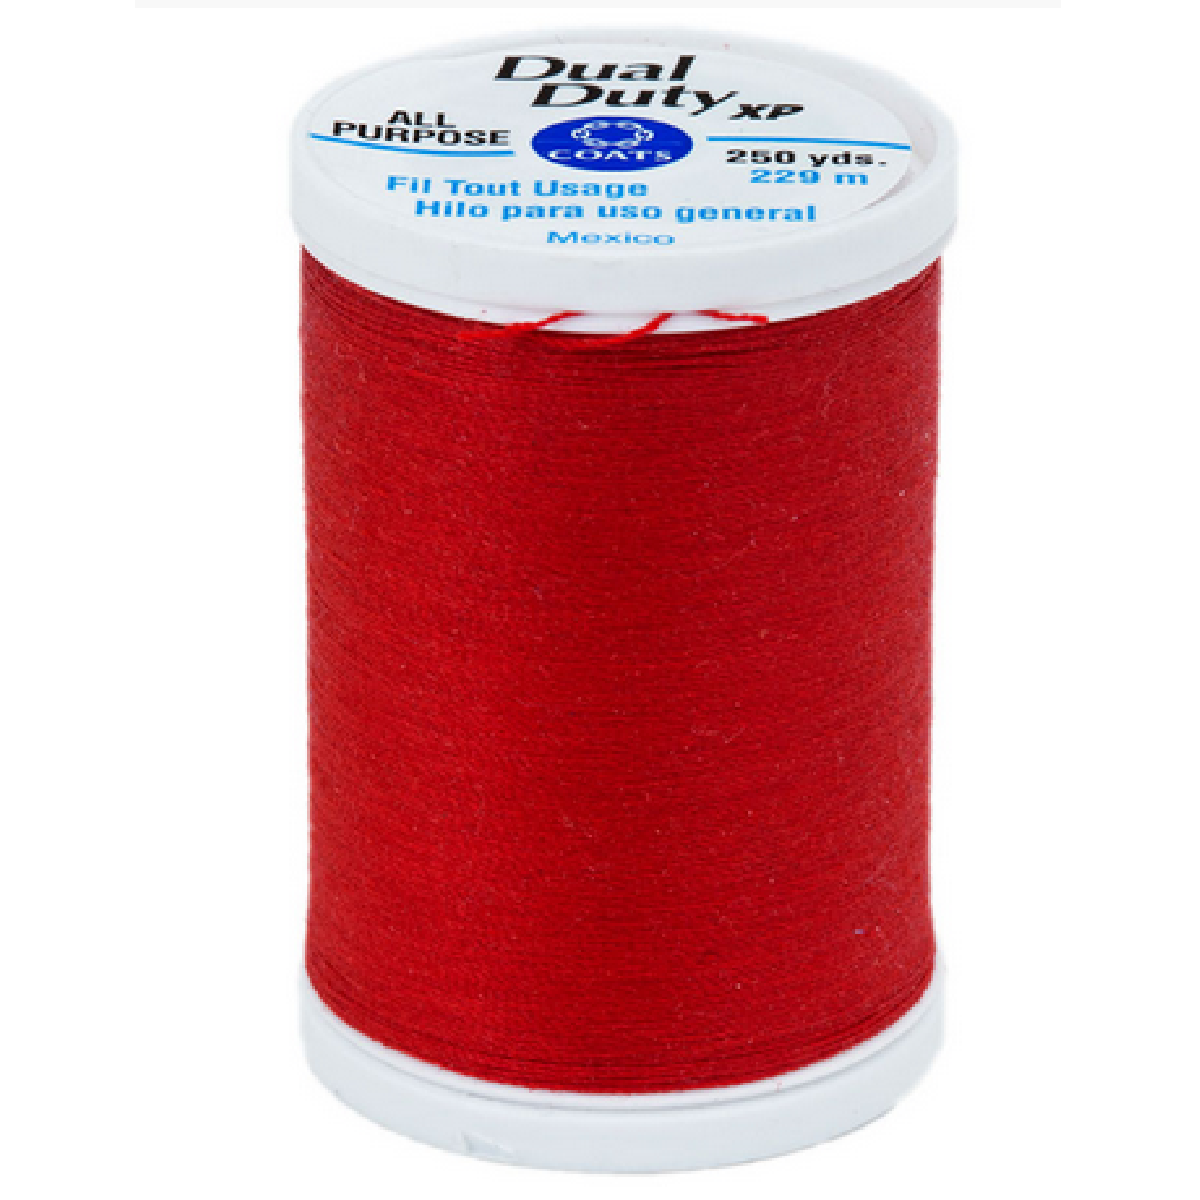 Coats and Clark Dual Duty XP All-Purpose Thread